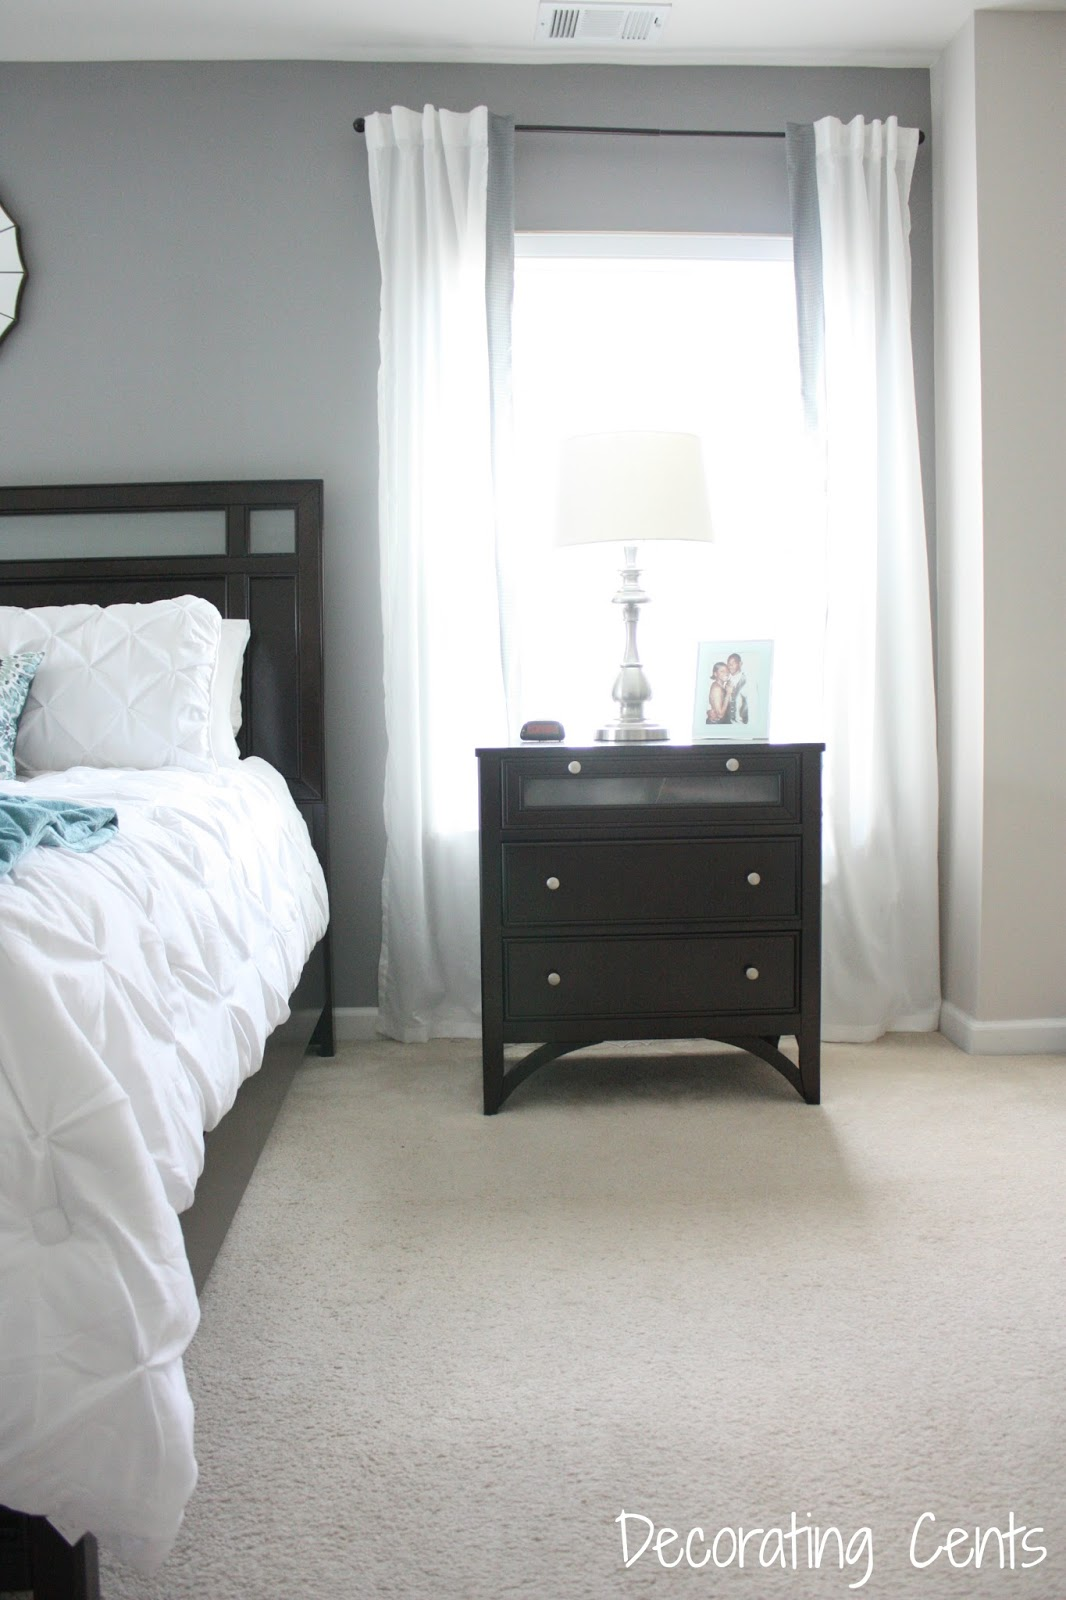 decorating cents master bedroom reveal